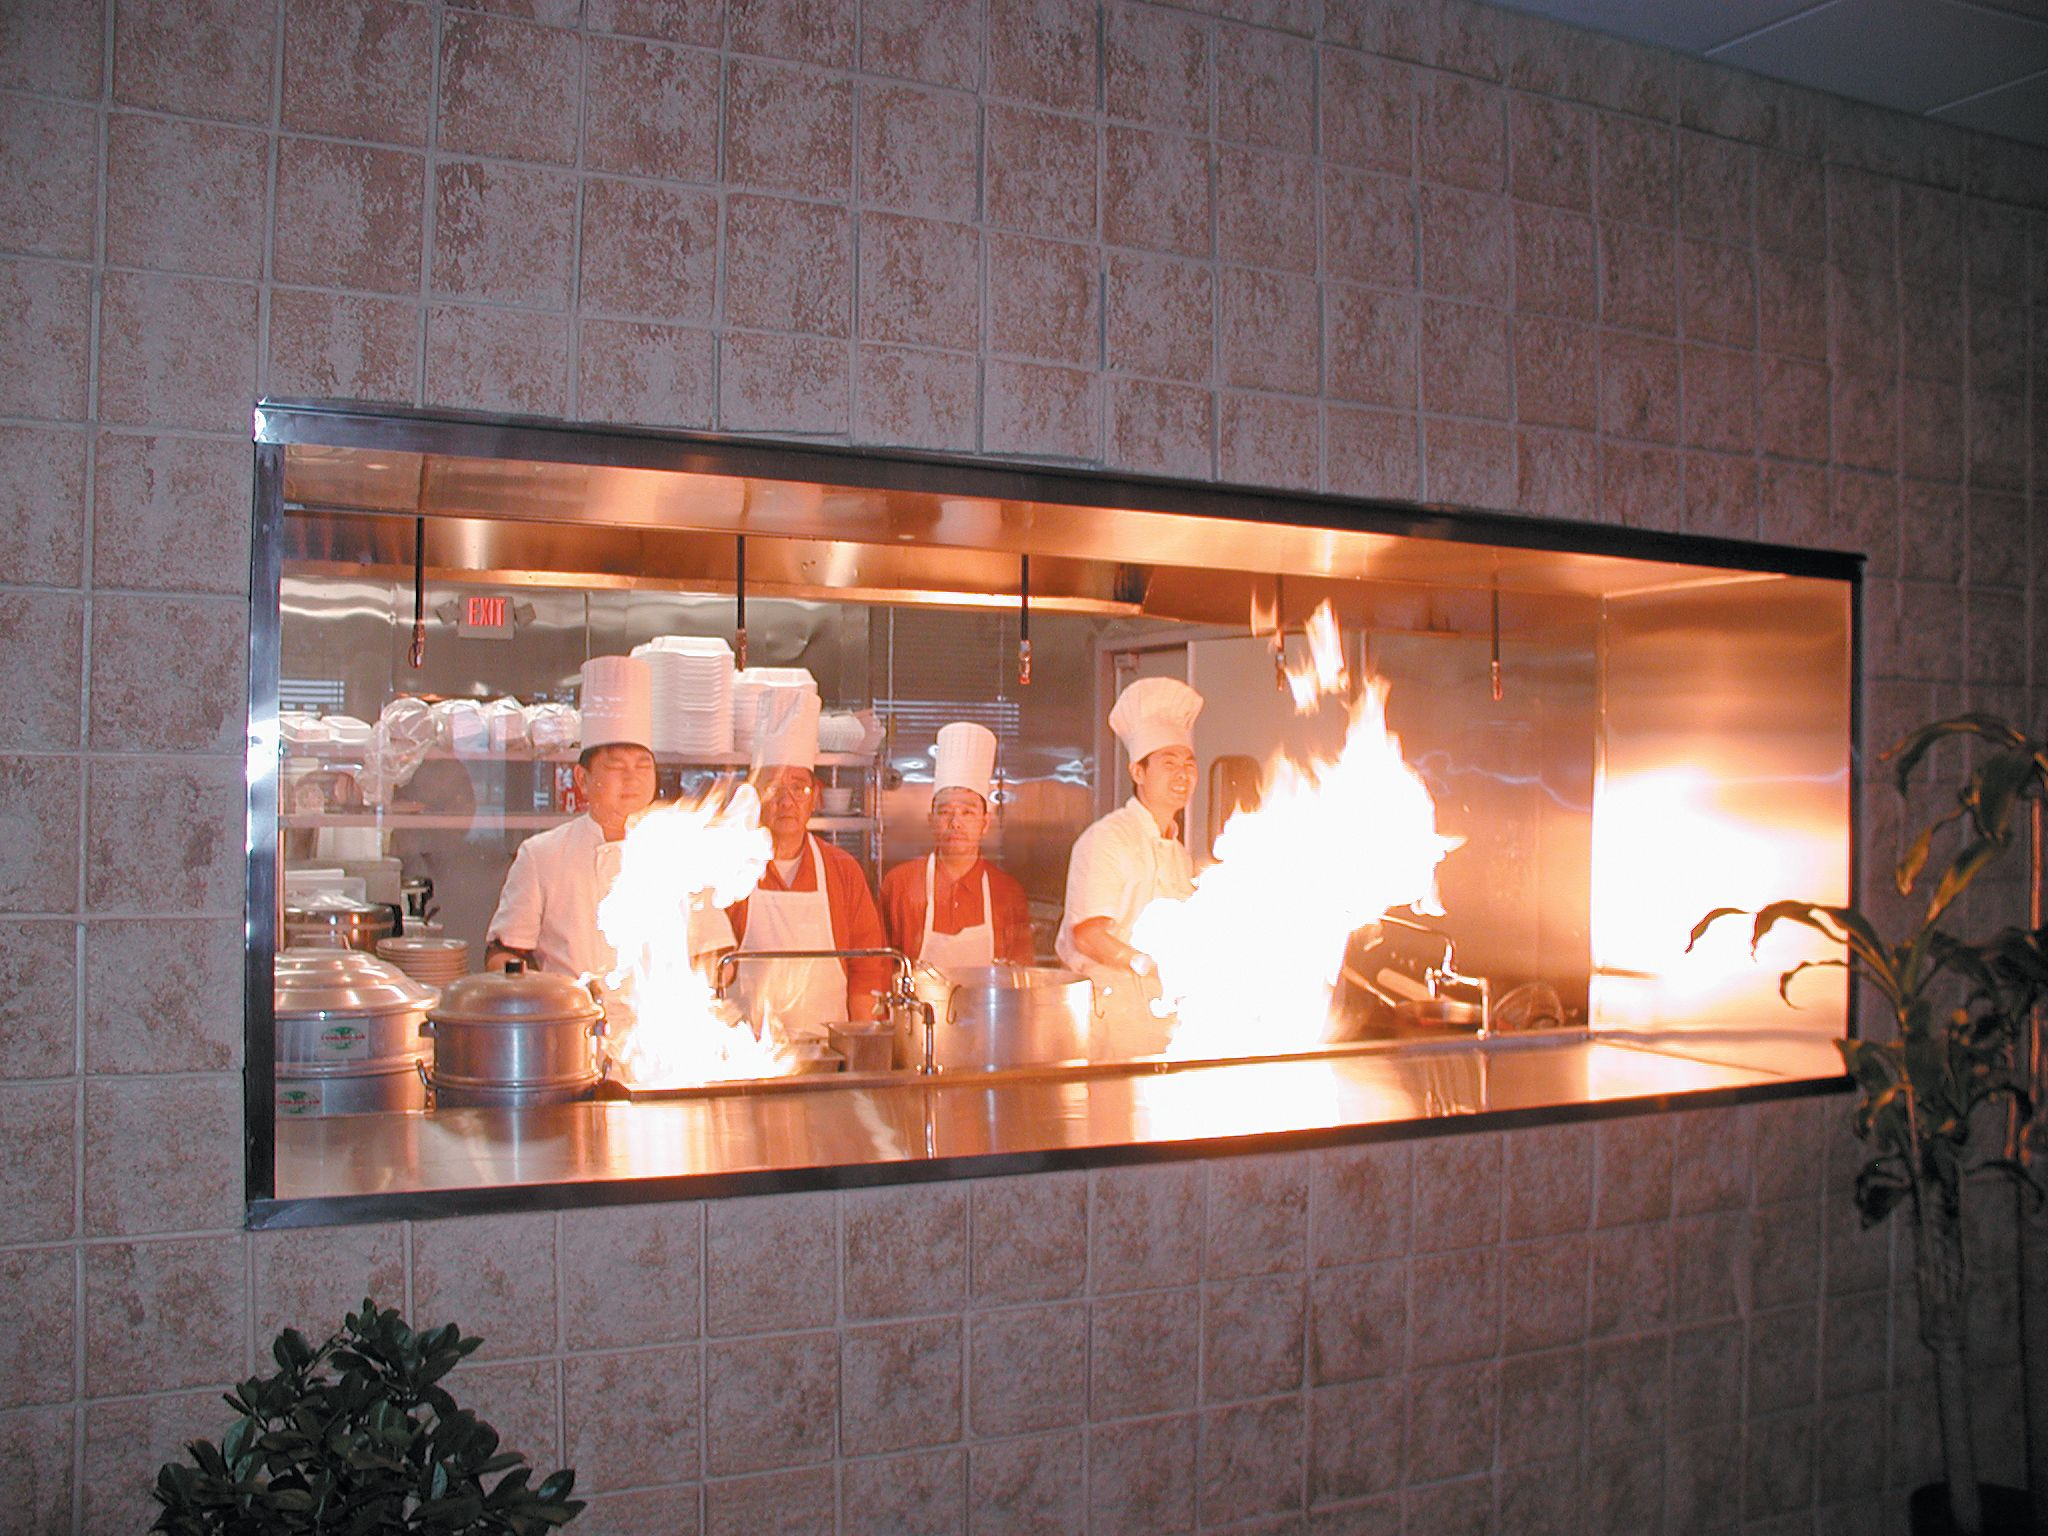 Chinese Restaurant Kitchen Layout restaurant kitchen window - google search | kitchen layout